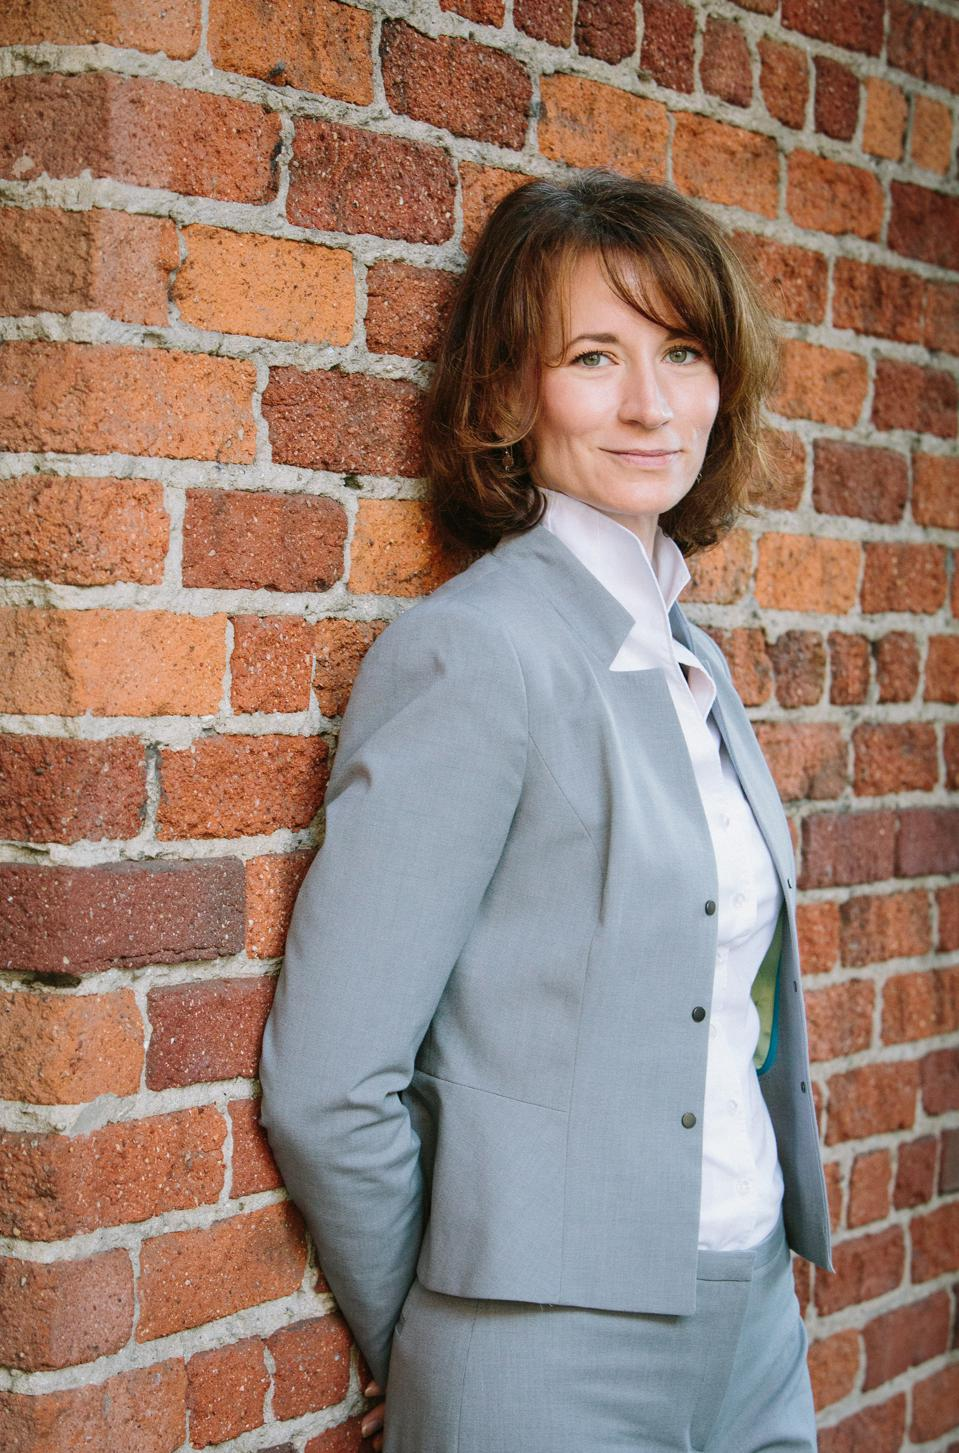 Pam Kostka, CEO of All Raise